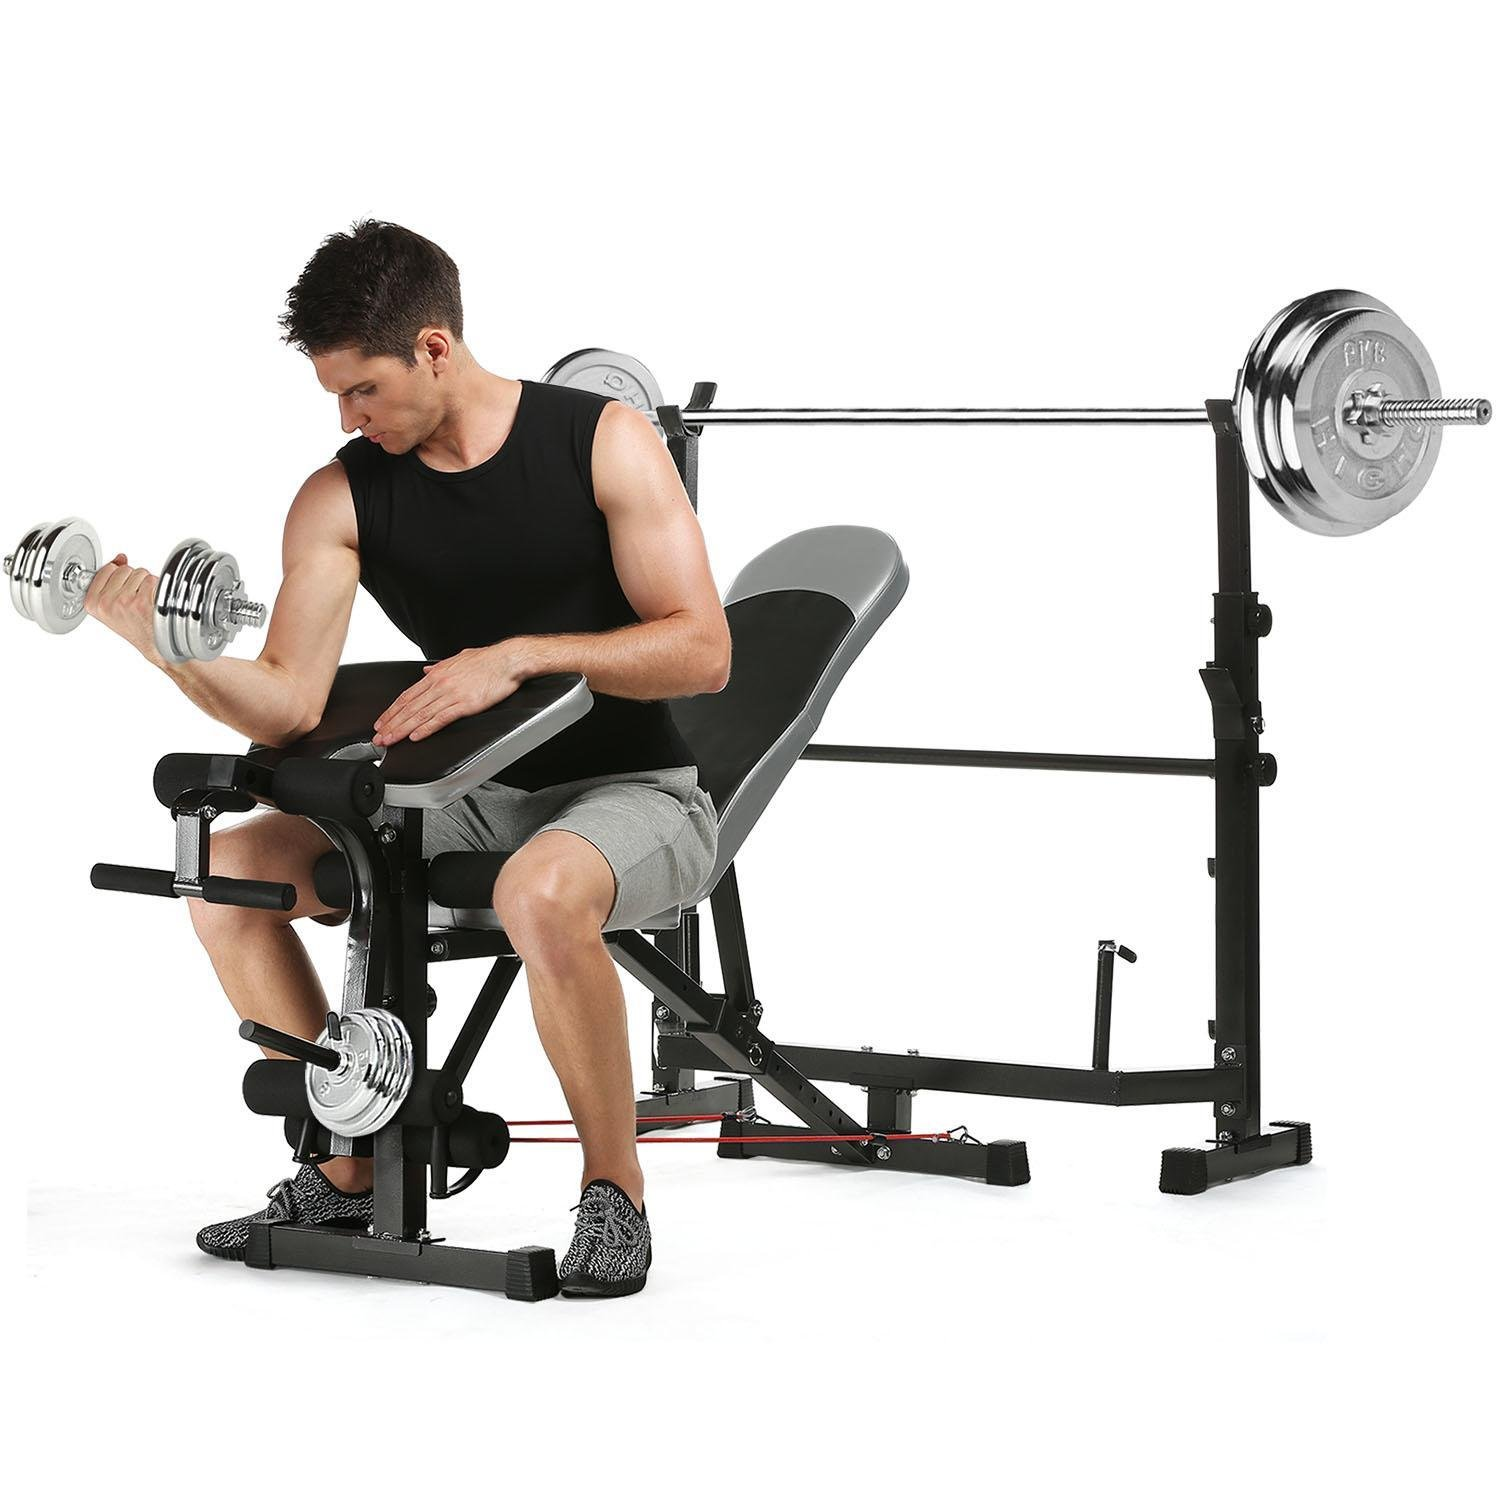 Olympic Wider Weight Bench Set for Home Gym Workout Power Training Exercising, Adjustable Bench Seat with Barbell Rack by Evokem (Image #9)